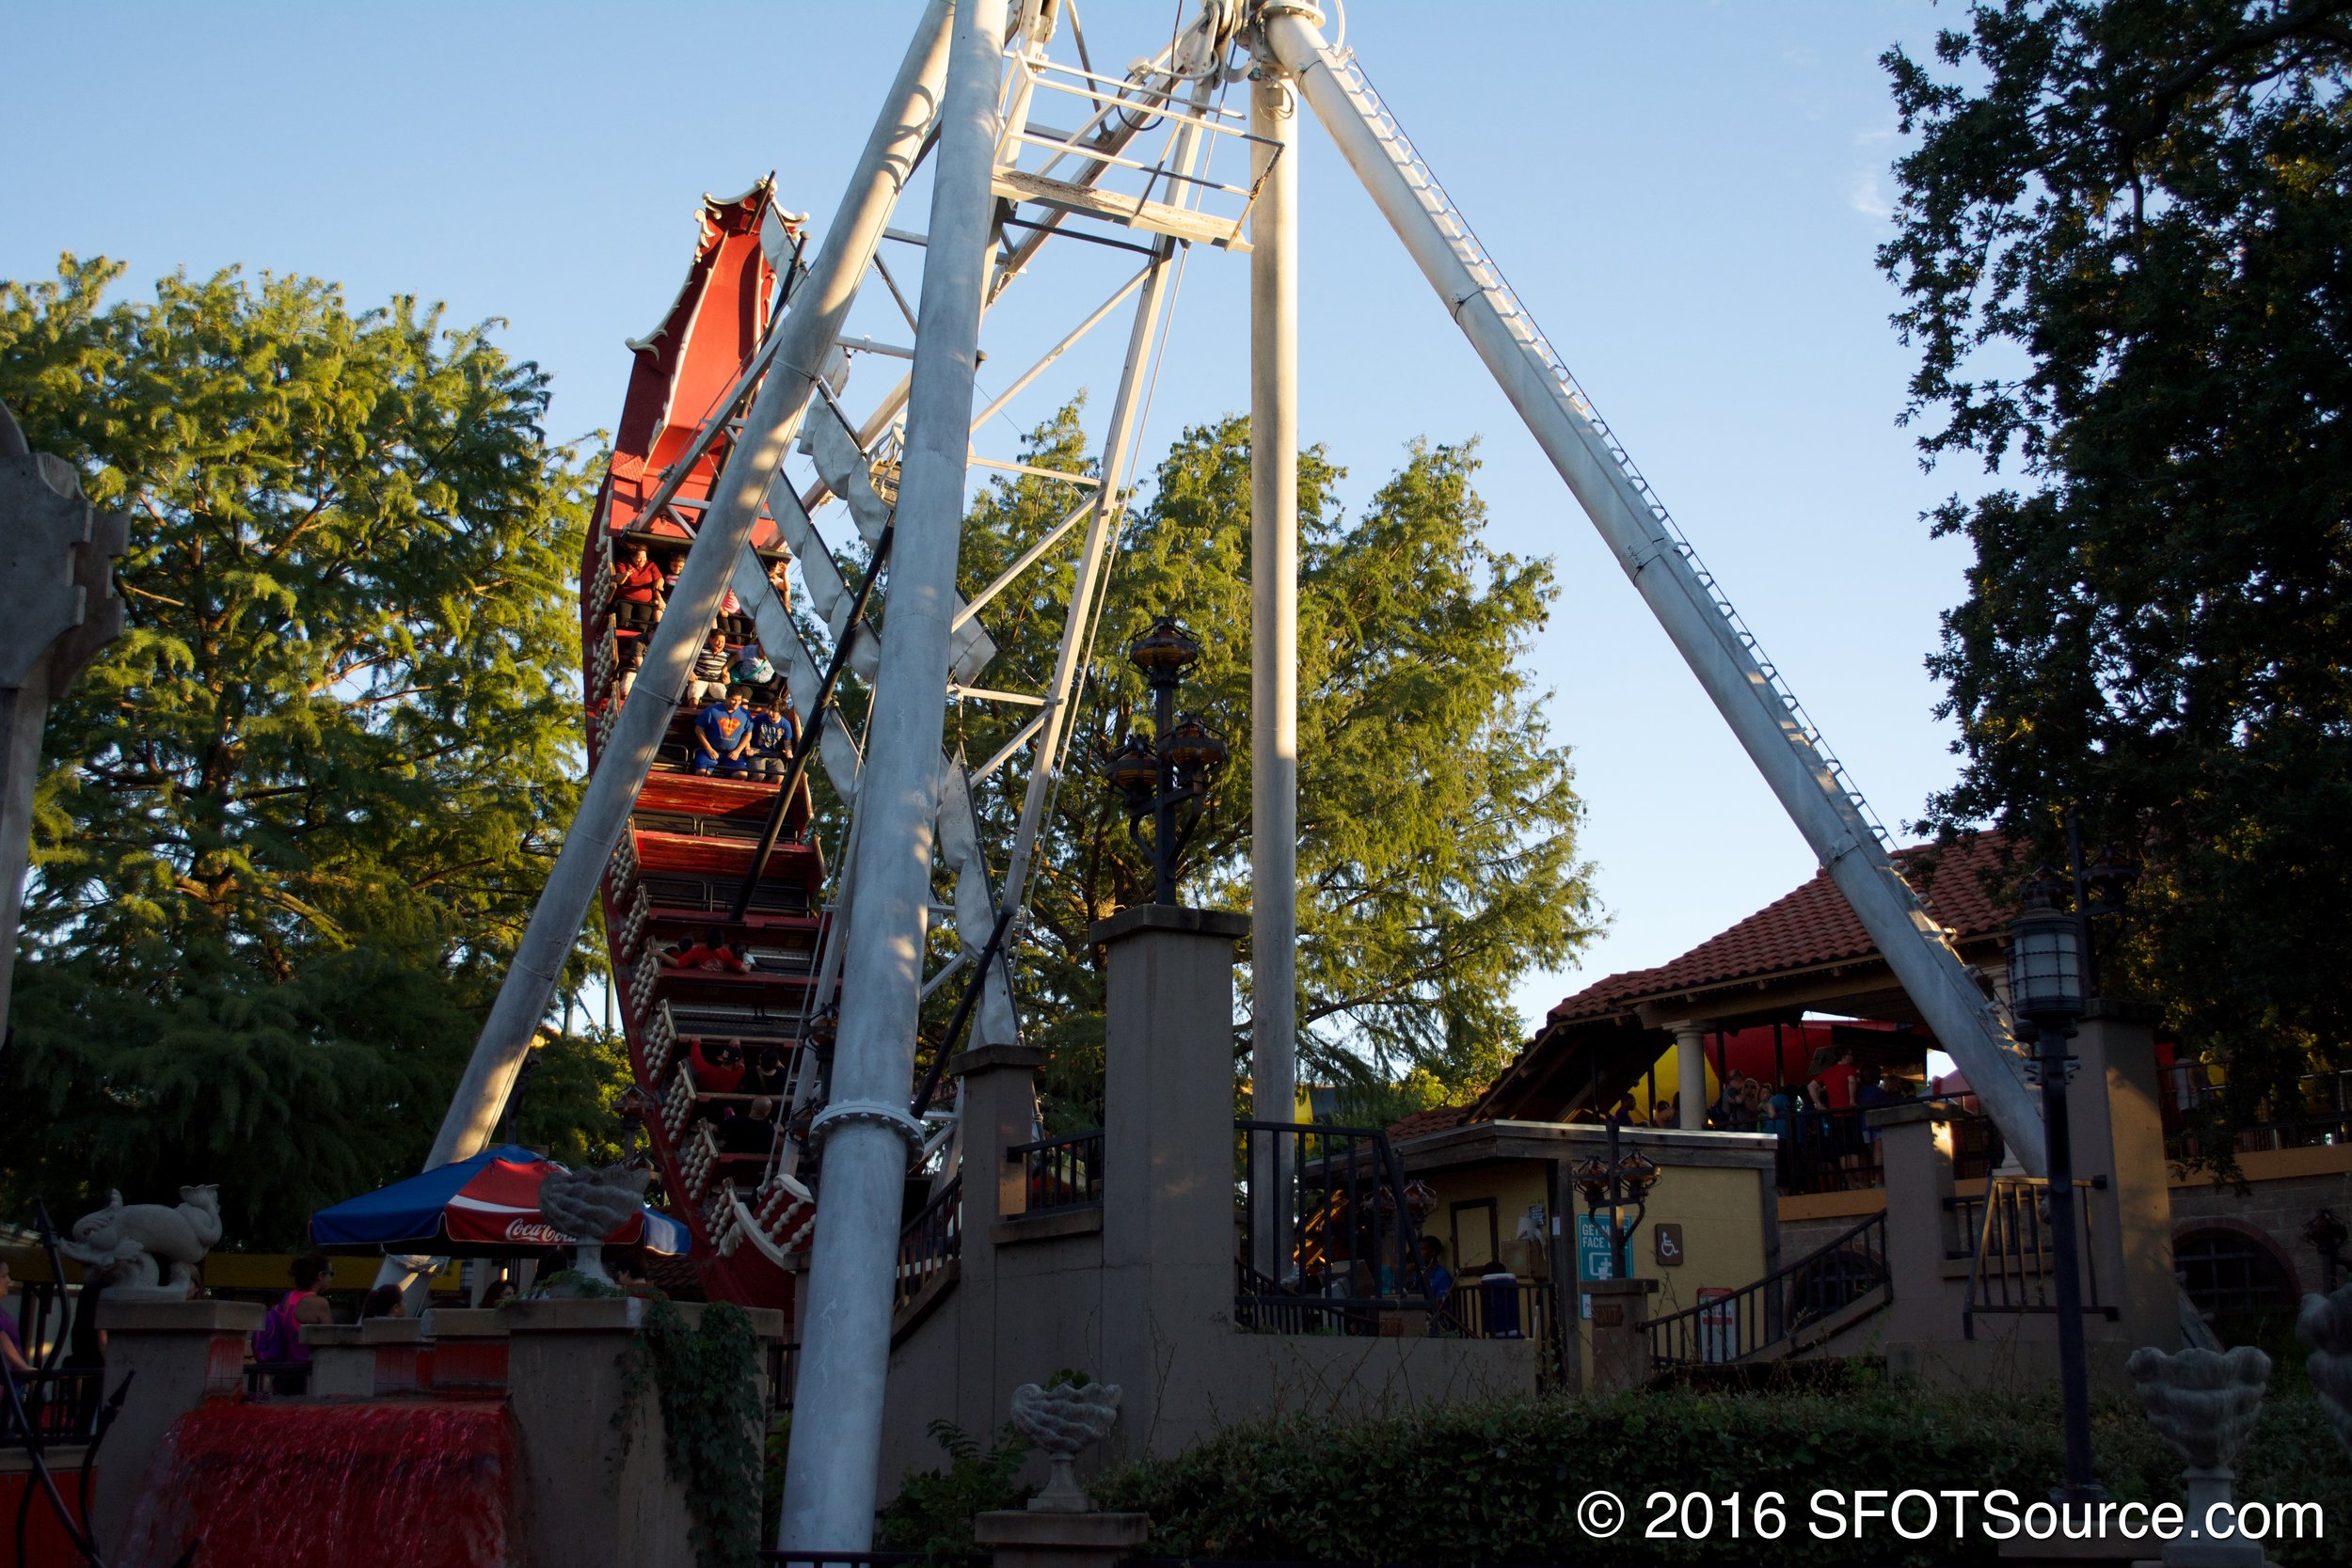 Conquistador is a classic swinging ship attraction.